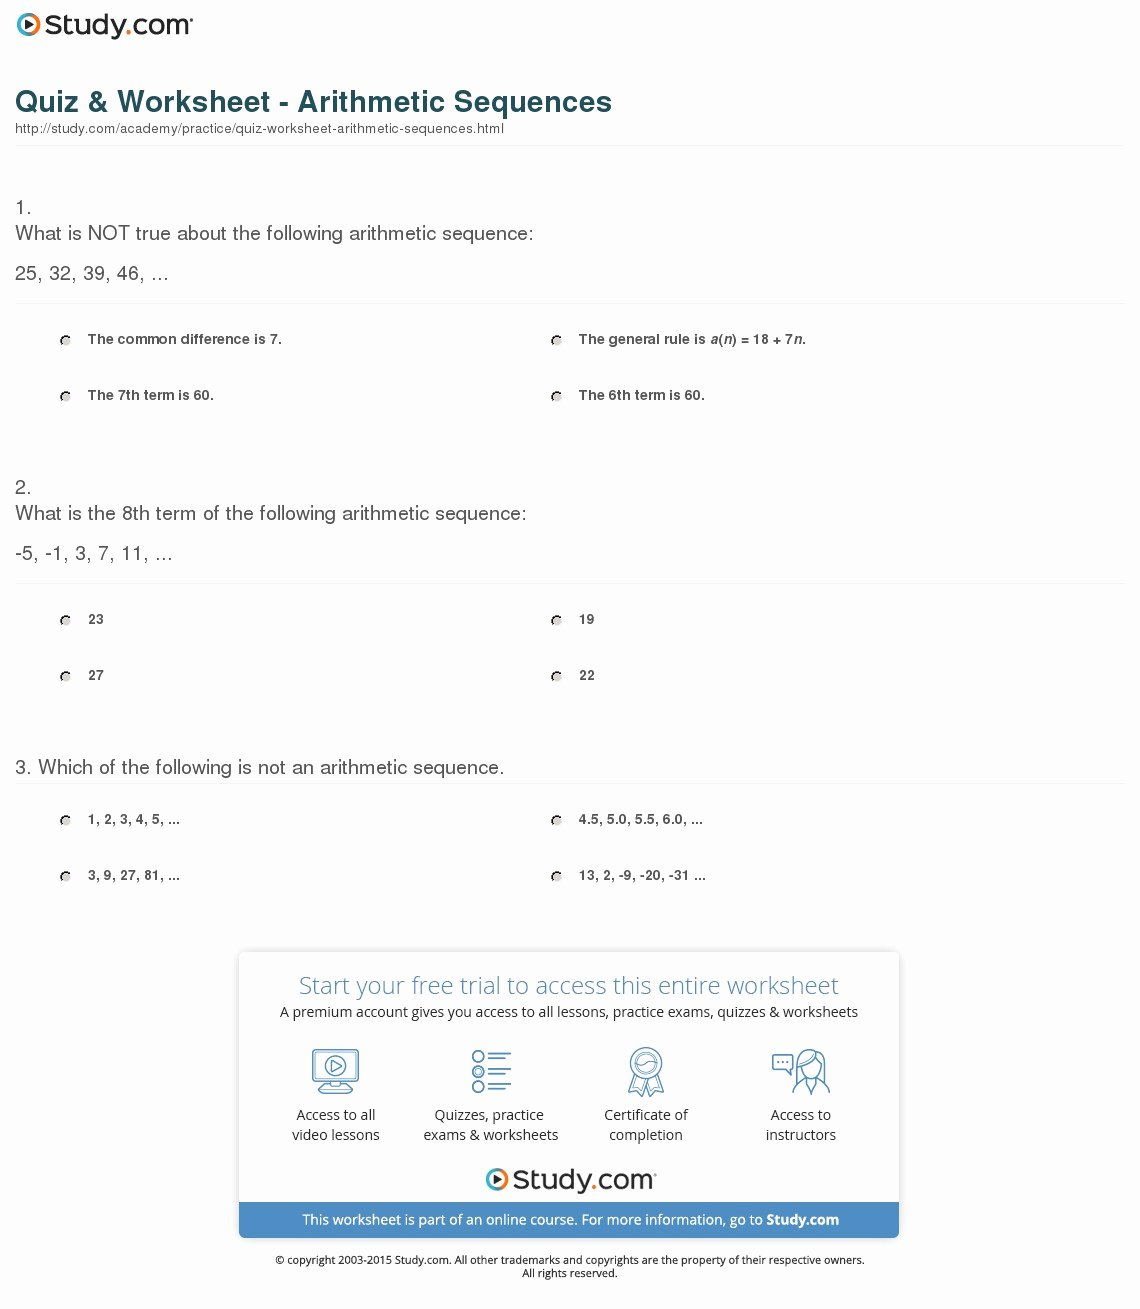 Arithmetic Sequence Worksheet Answers Lovely Quiz & Worksheet Arithmetic Sequences